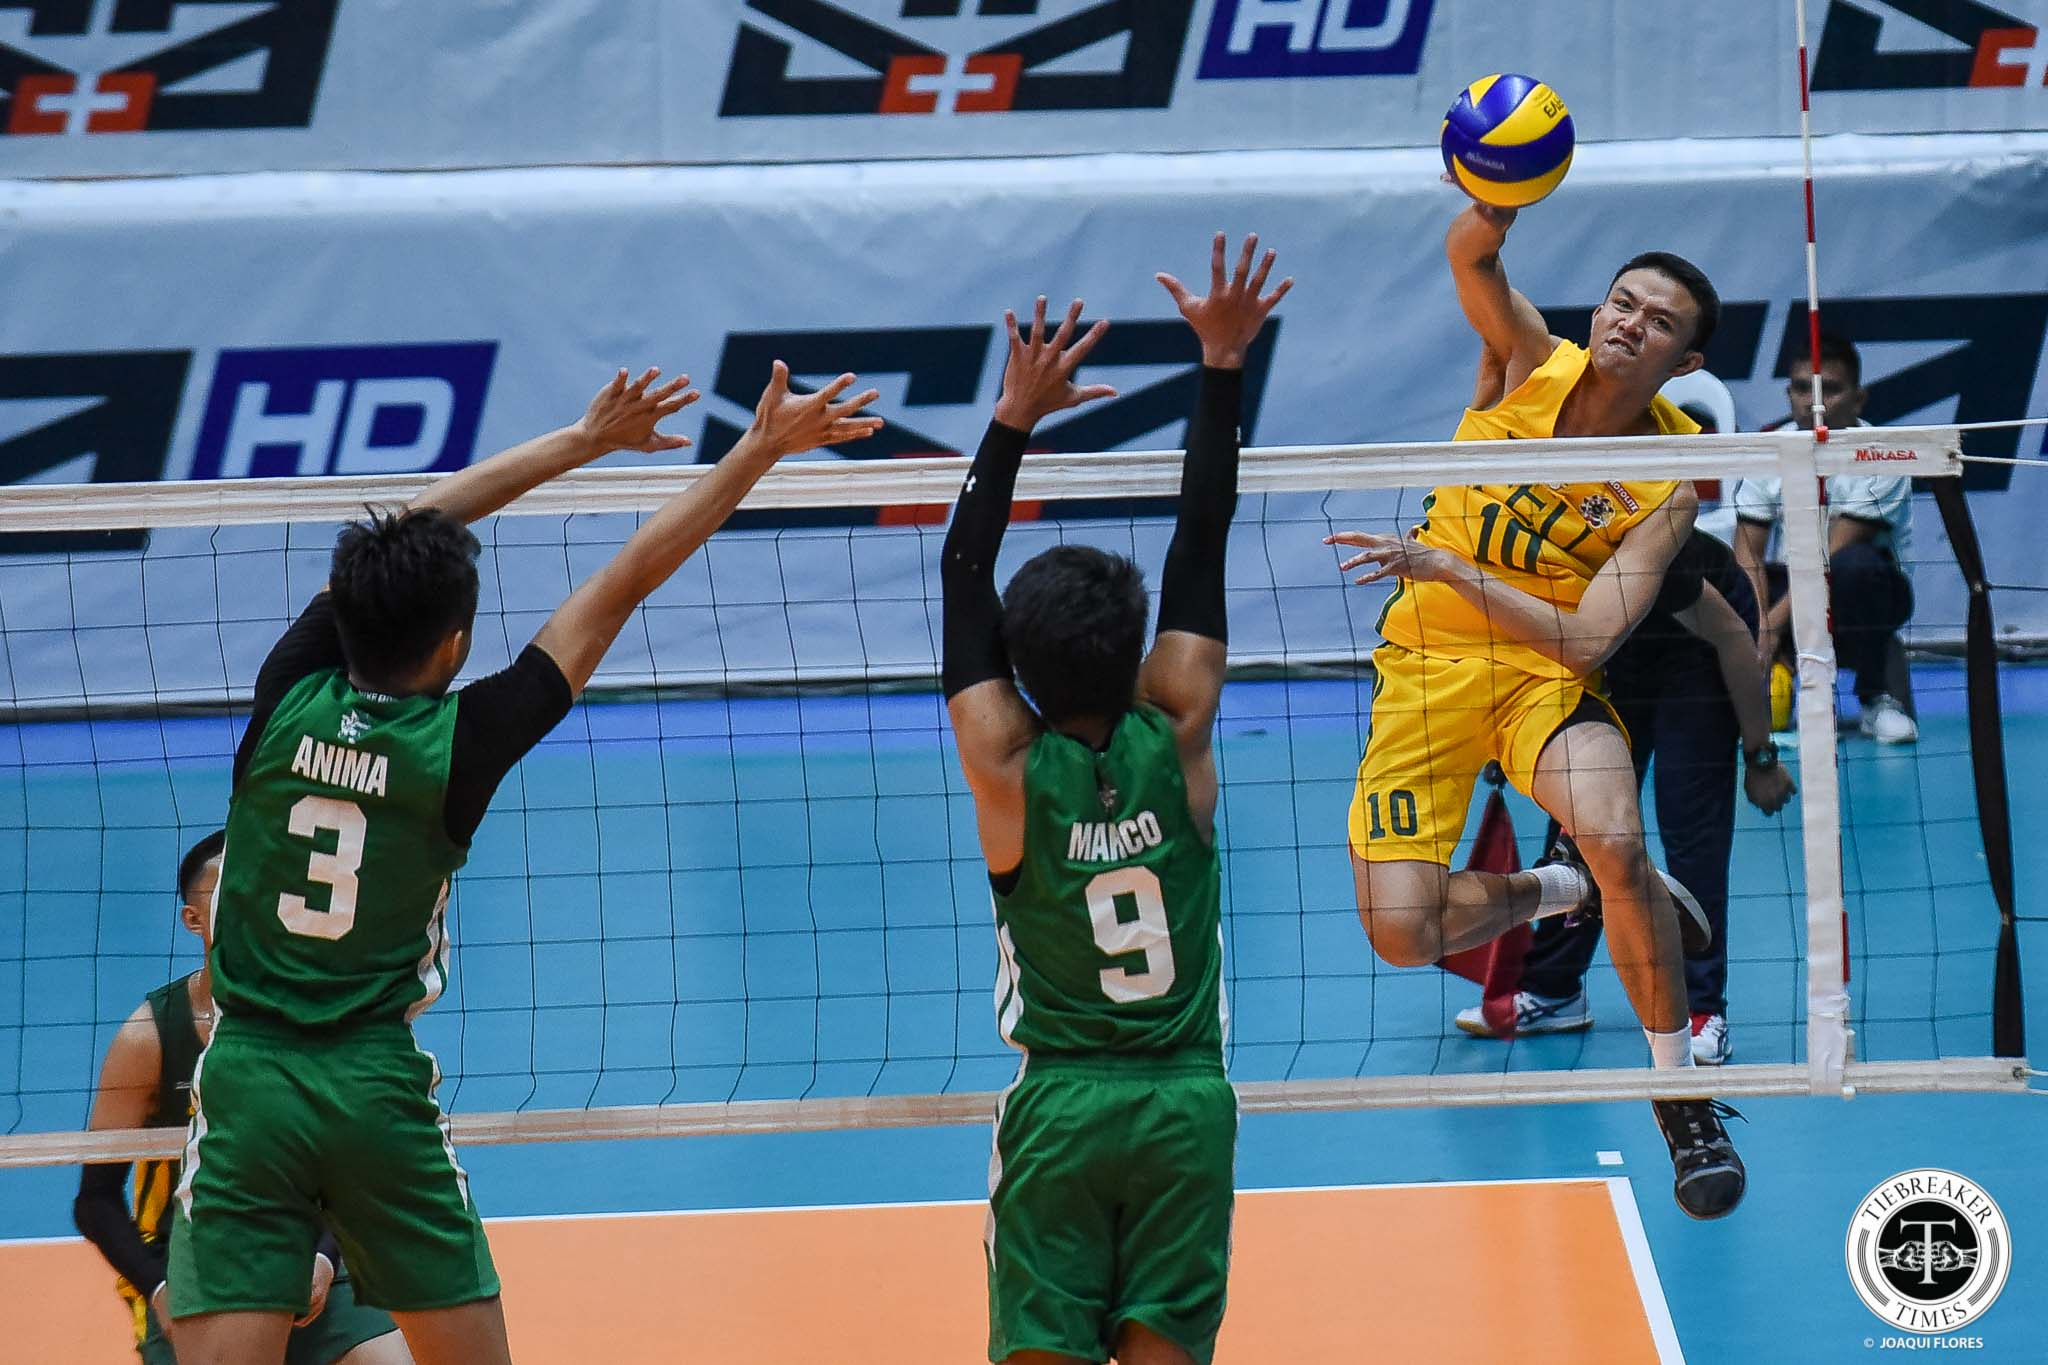 Tiebreaker Times FEU Tamaraws secure last twice-to-beat incentive, sweep La Salle DLSU FEU News UAAP Volleyball  UAAP Season 81 Men's Volleyball UAAP Season 81 RJ Paler Rey Diaz Owen Suarez Jude Garcia Jeremiah Barrica FEU Men's Volleyball DLSU Men's Volleyball Cris Dumago Billie Anima Arnold Laniog